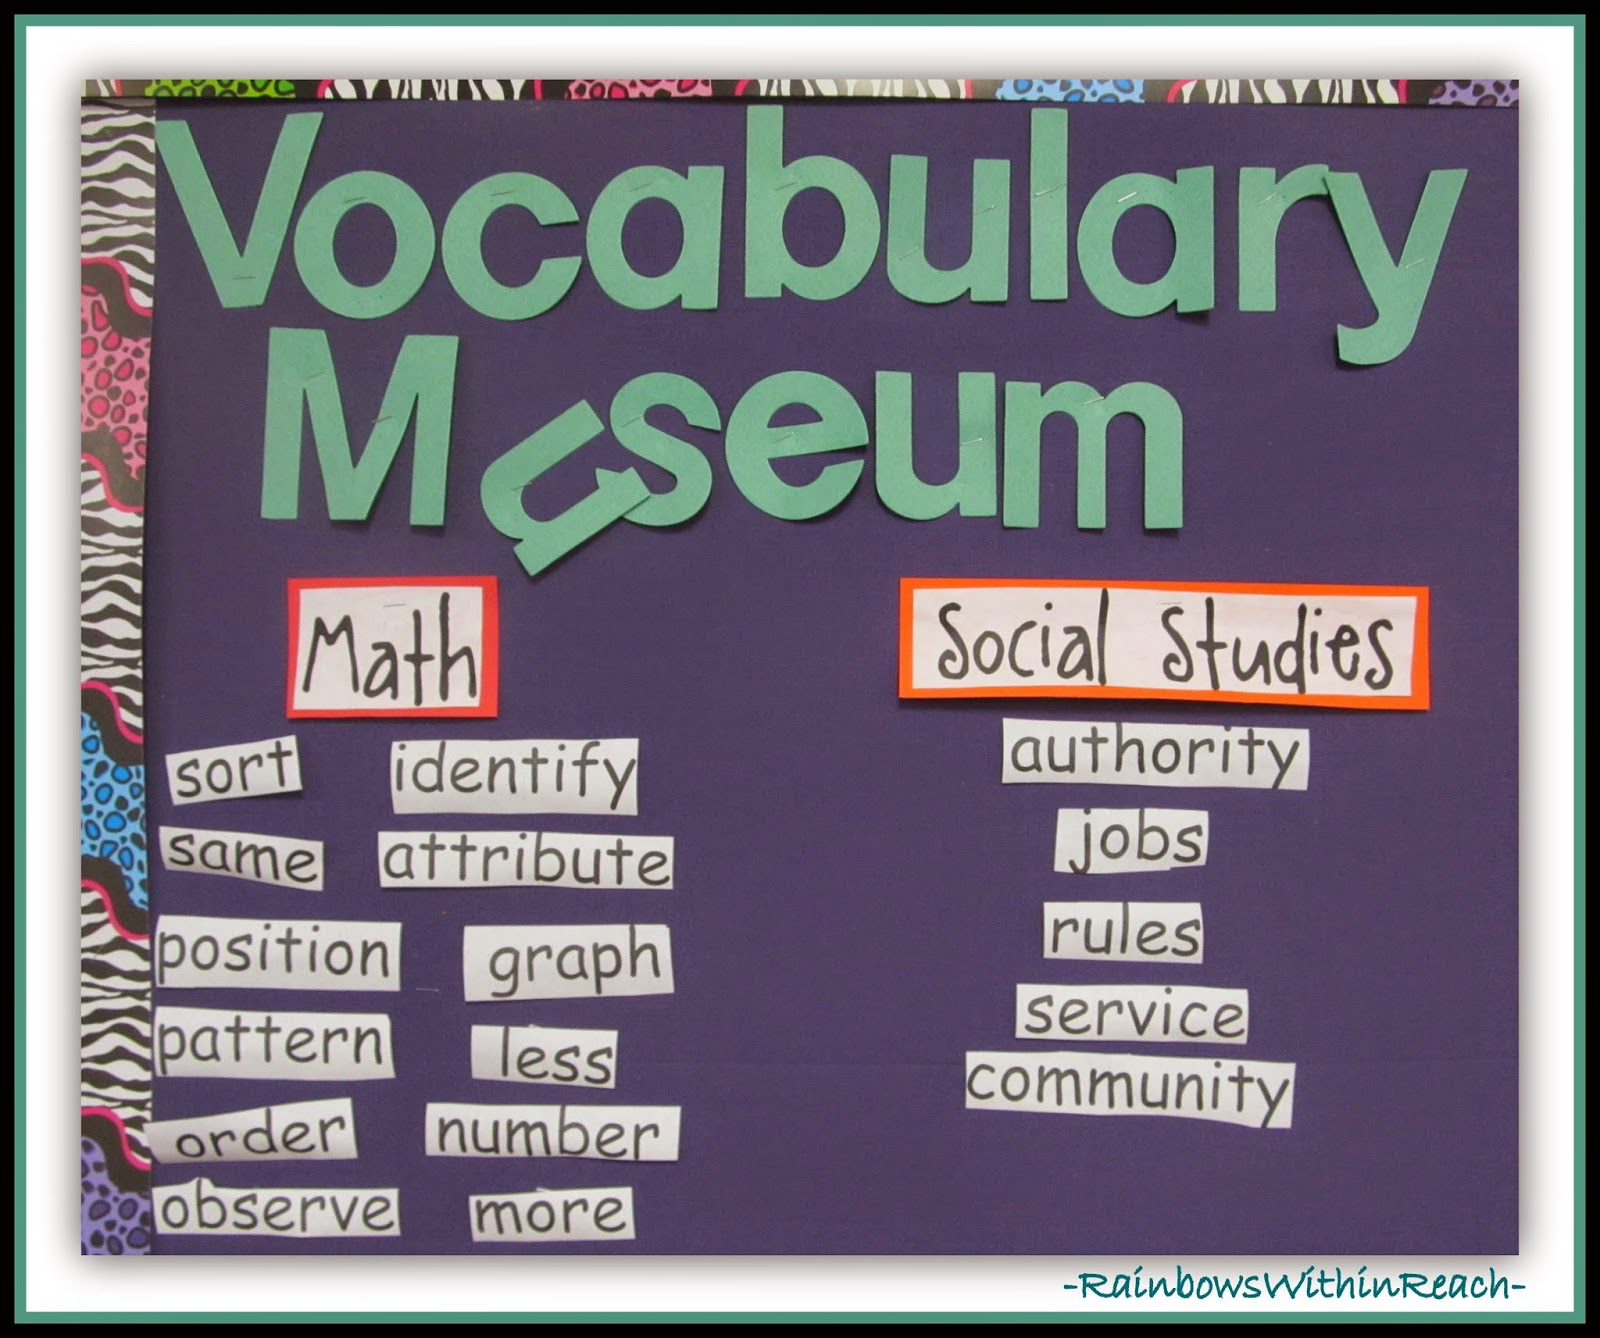 Vocabulary Museum: Word Wall RoundUP at RainbowsWithinReach